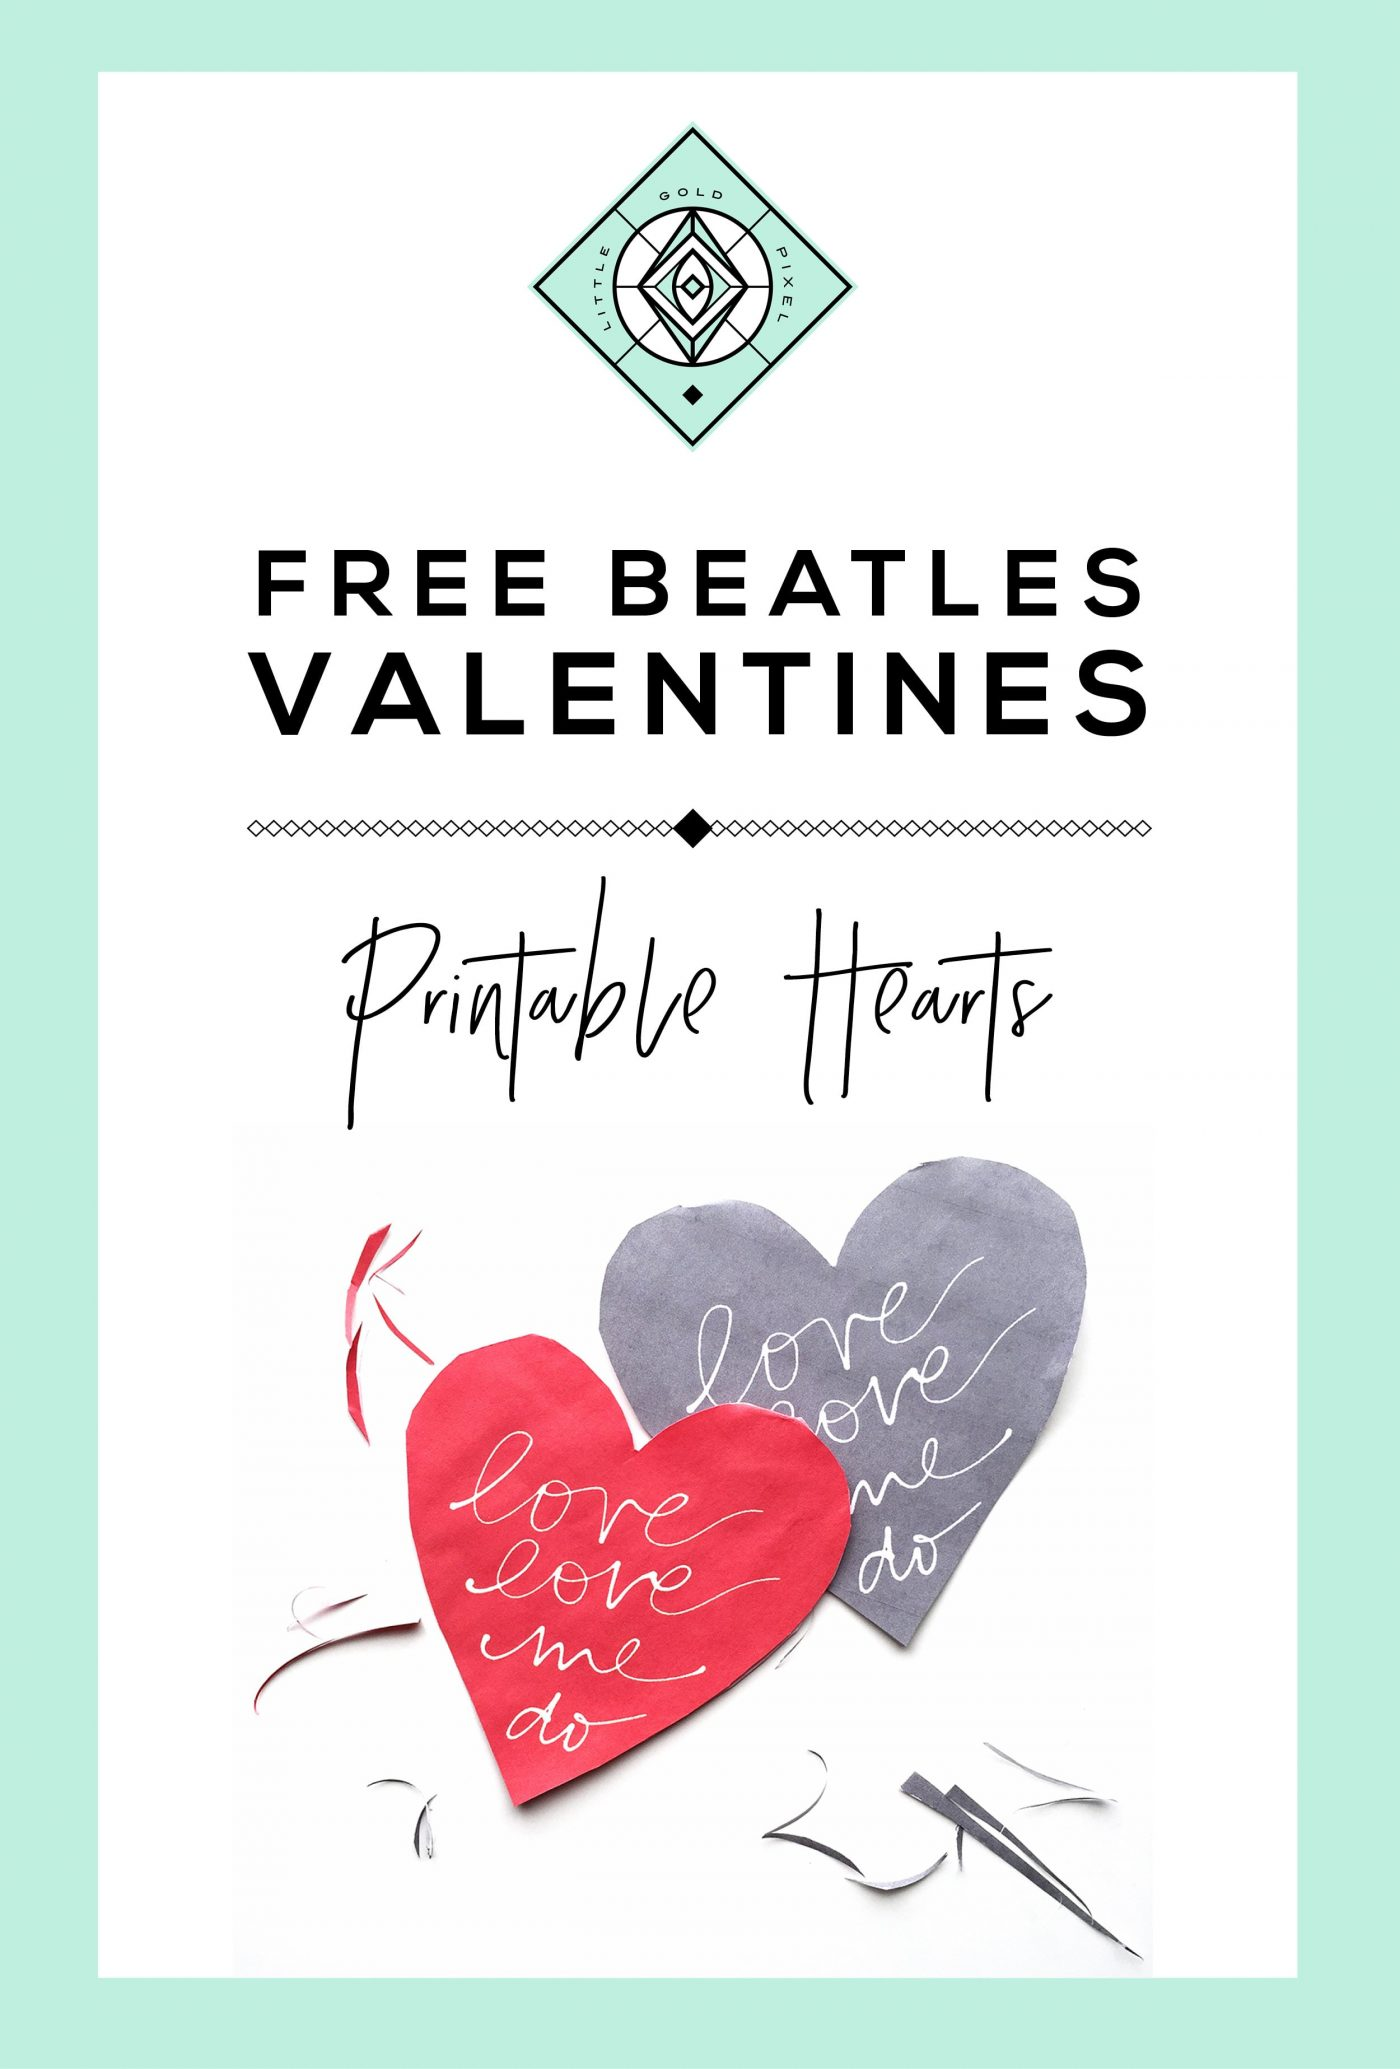 Free Beatles Valentine Printable • Little Gold Pixel